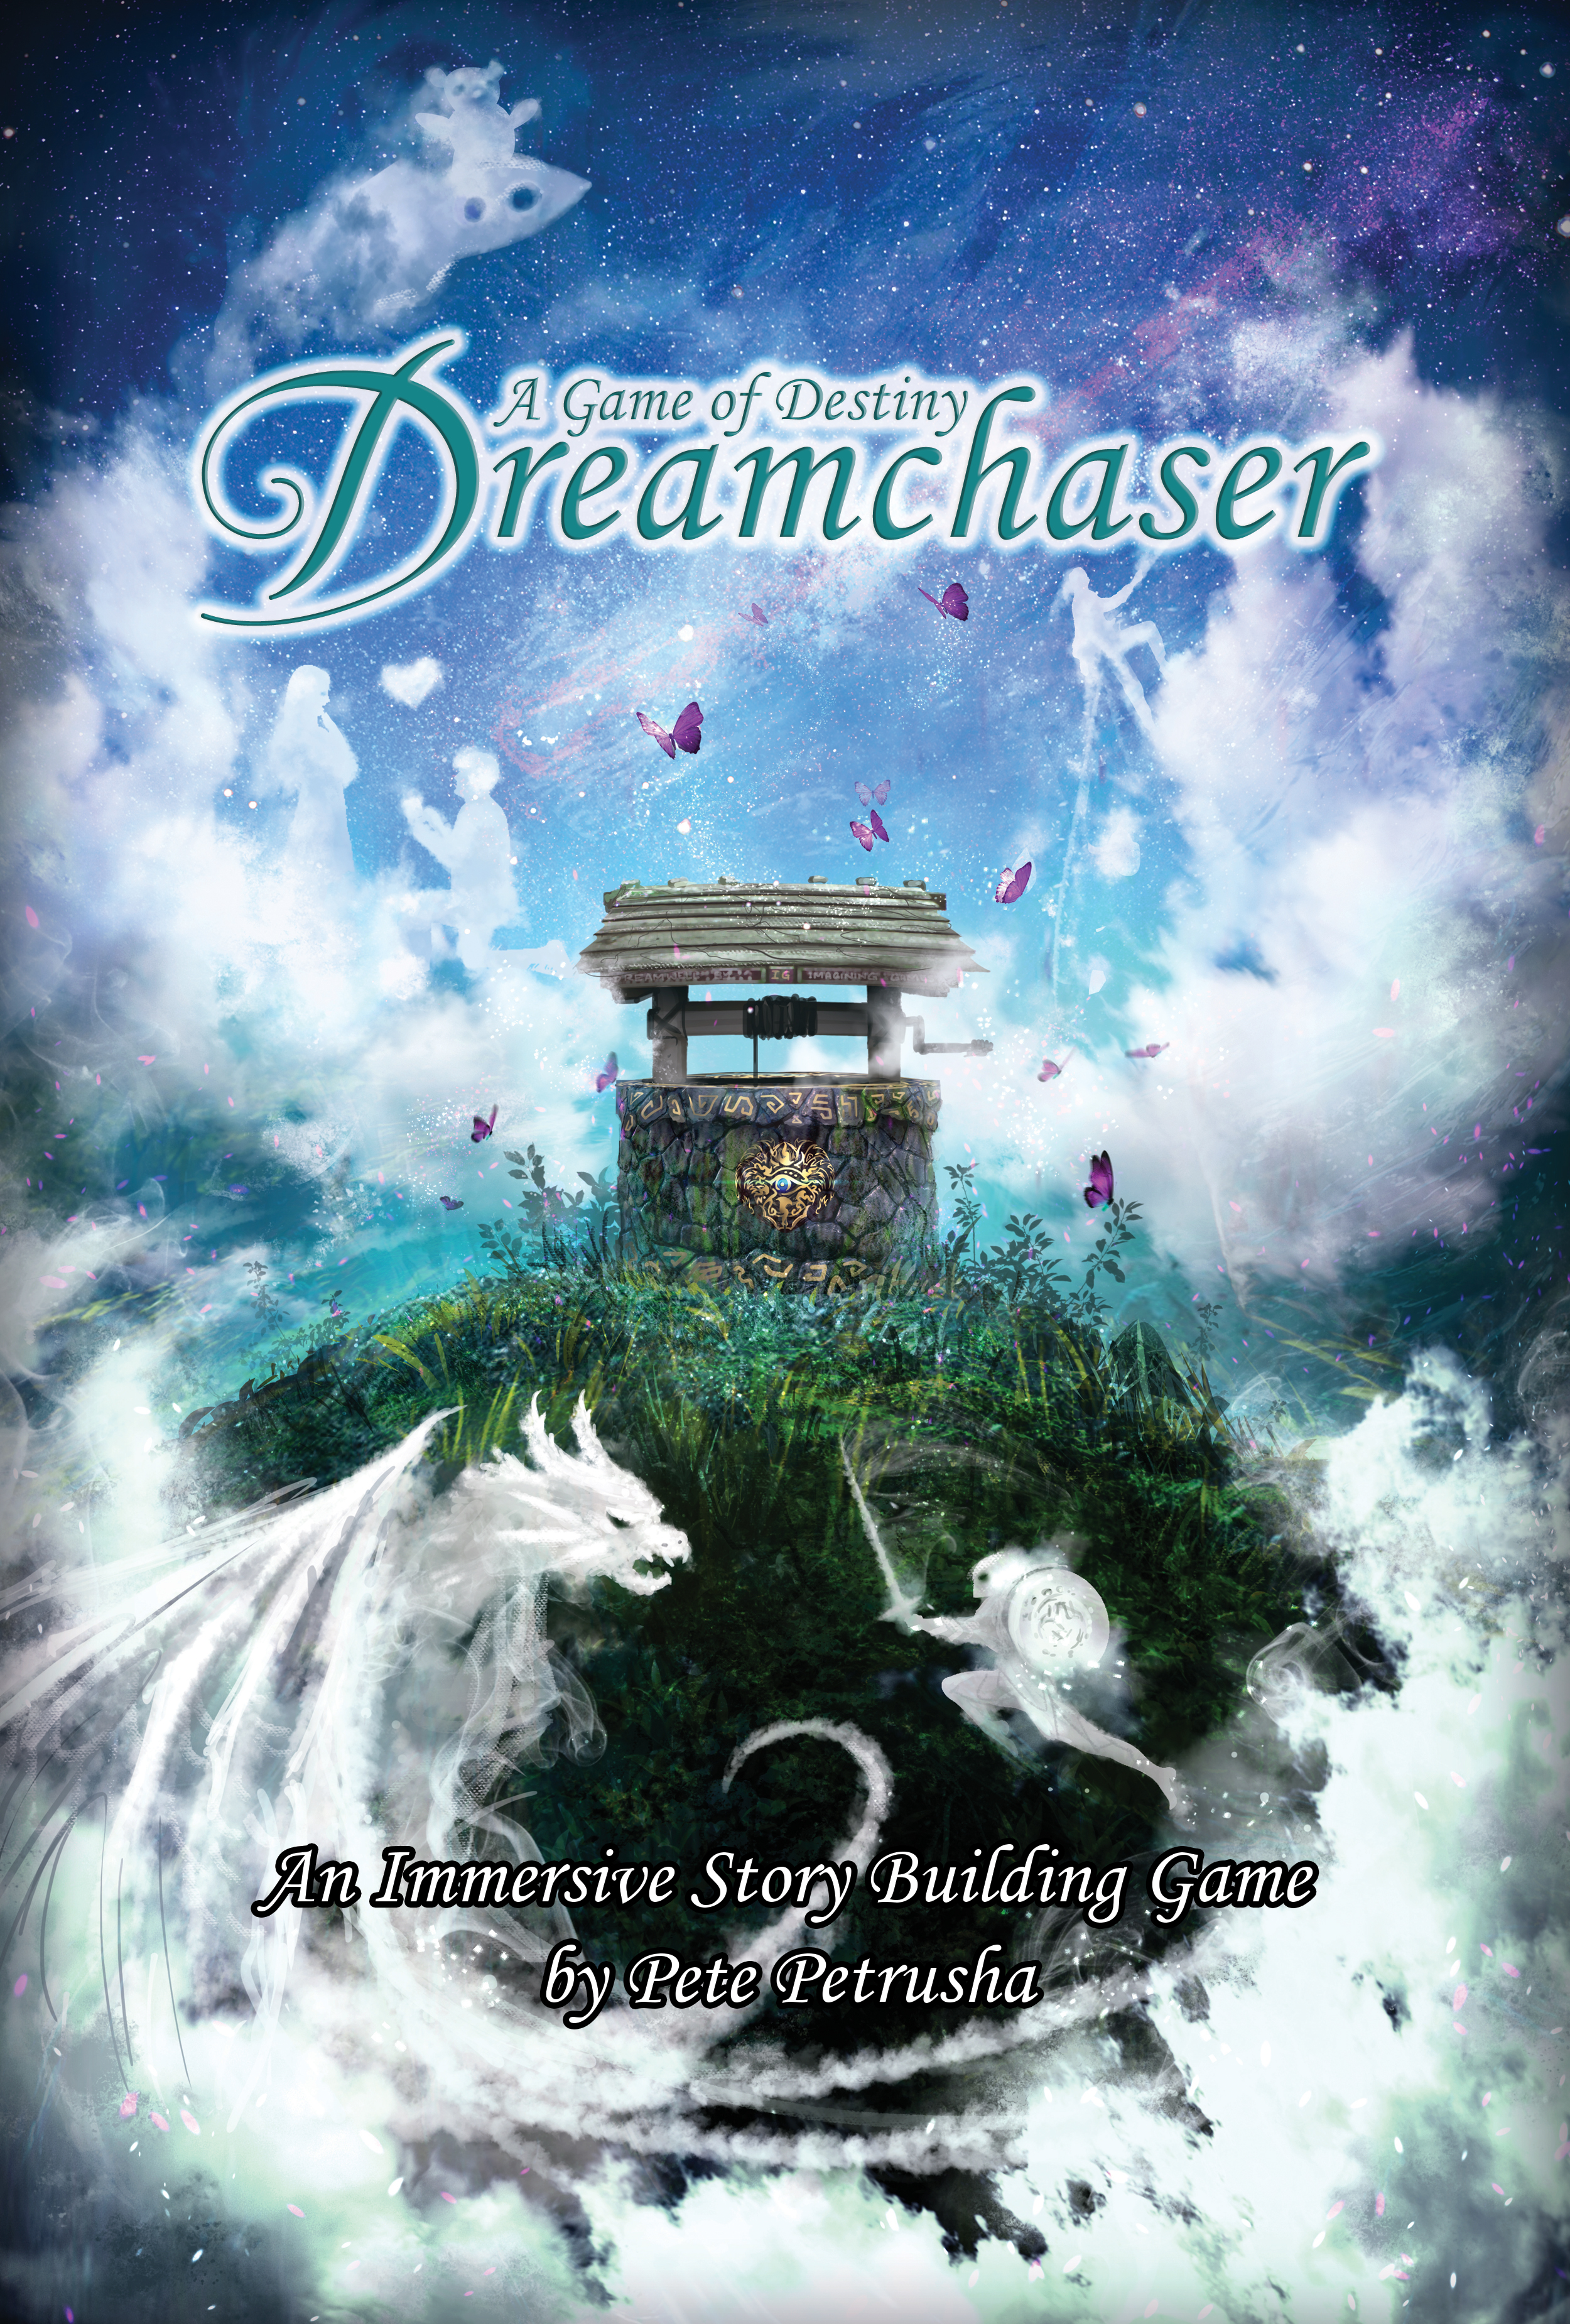 The Front Cover of  Dreamchaser: A Game of Destiny. (Core Book)